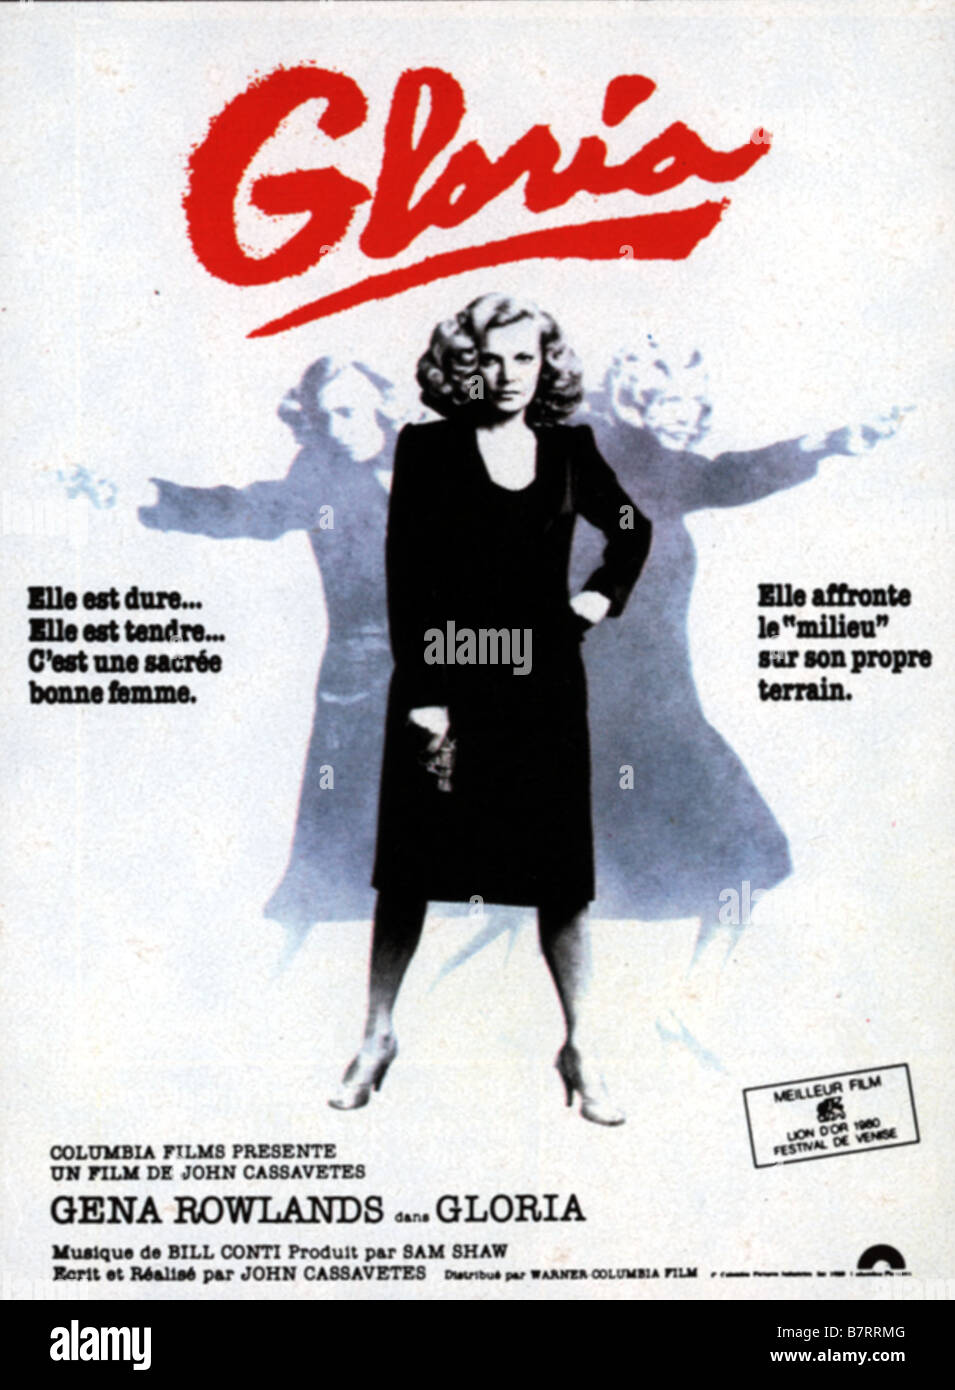 gloria-year-1980-usa-director-john-cassa